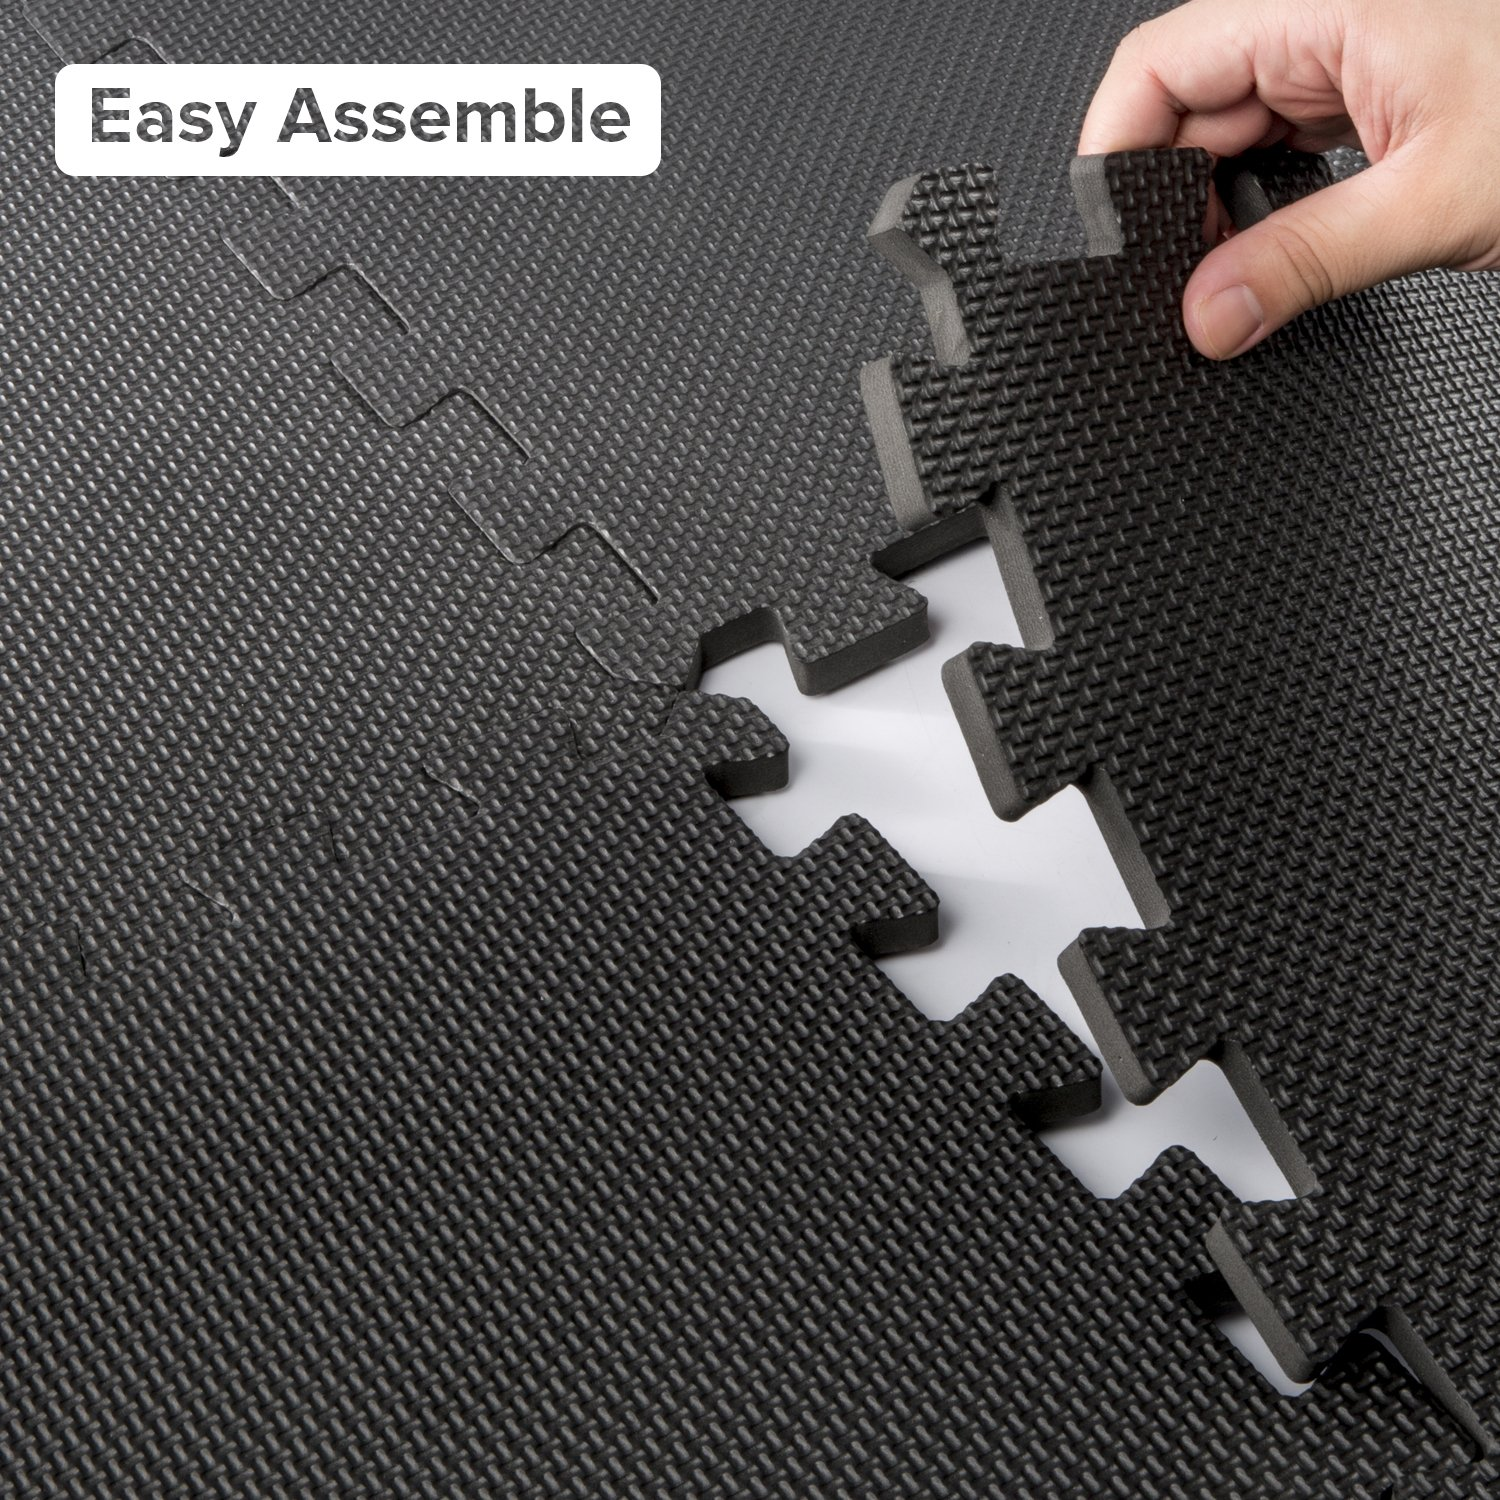 LEVOIT Puzzle Exercise Floor Mat for Gym Equipment, EVA Foam Interlocking Tiles, Protective Flooring for Working Out, Easy Assembly, 24 SQ FT (6 Tiles, 12 Borders), Black by LEVOIT (Image #5)